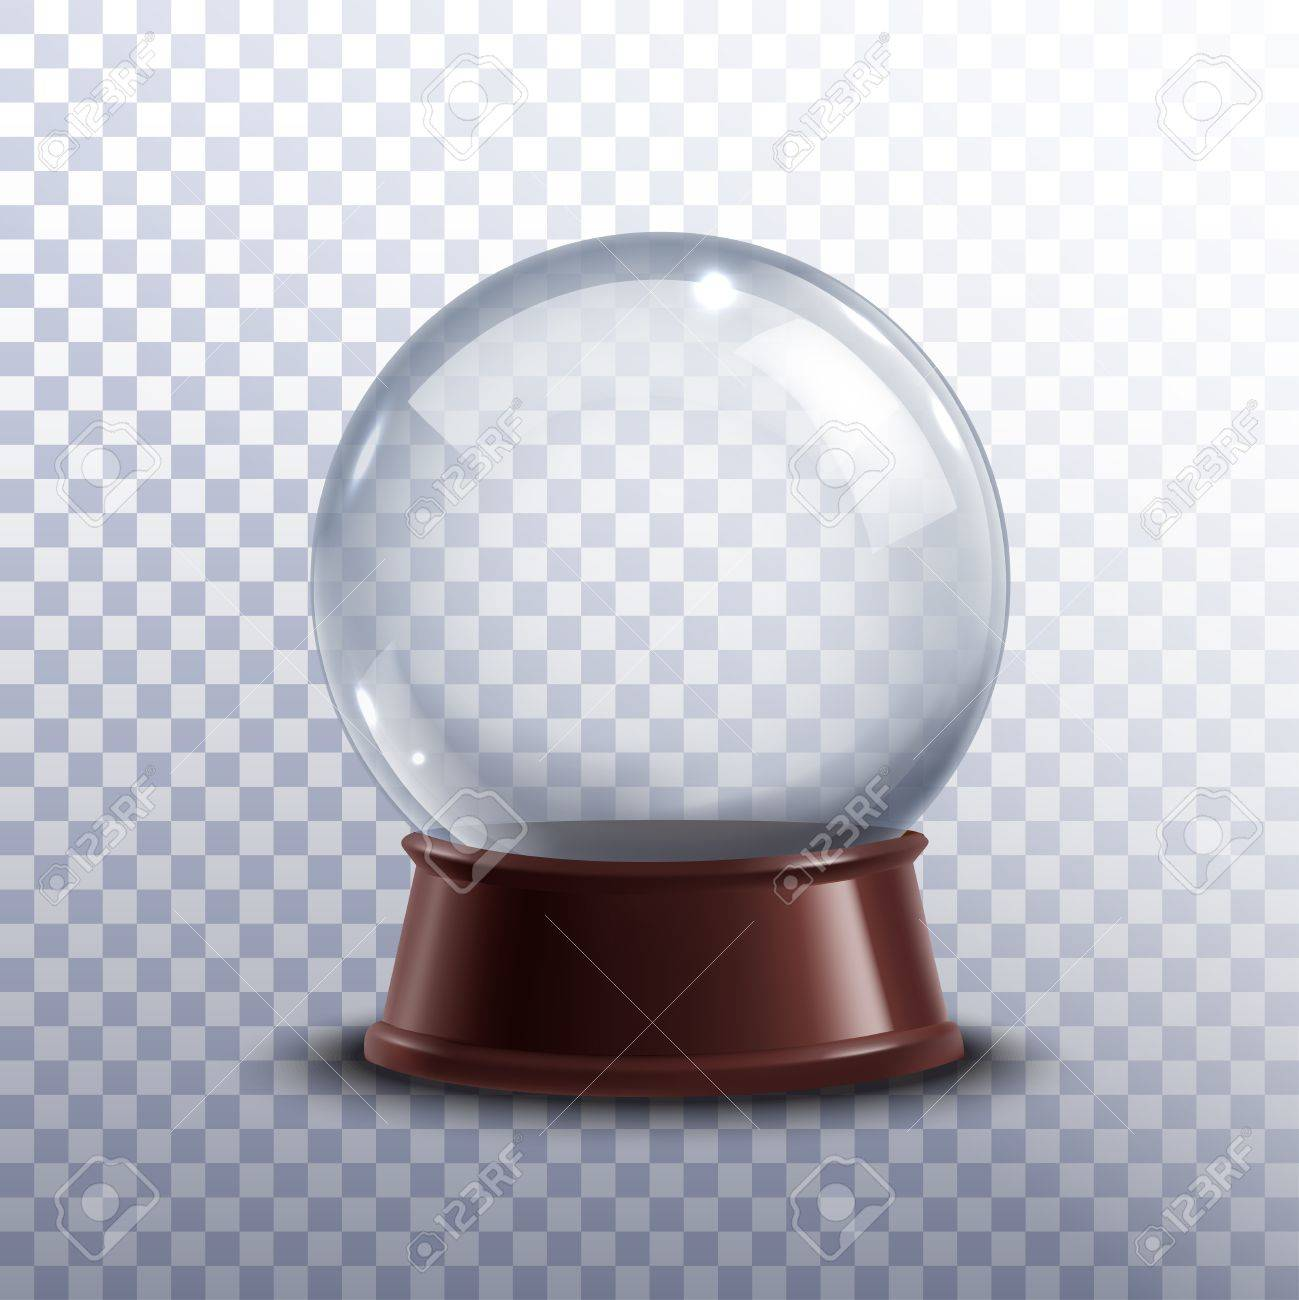 Realisitc 3d snow globe toy isolated on transparent background vector illustration - 52696353